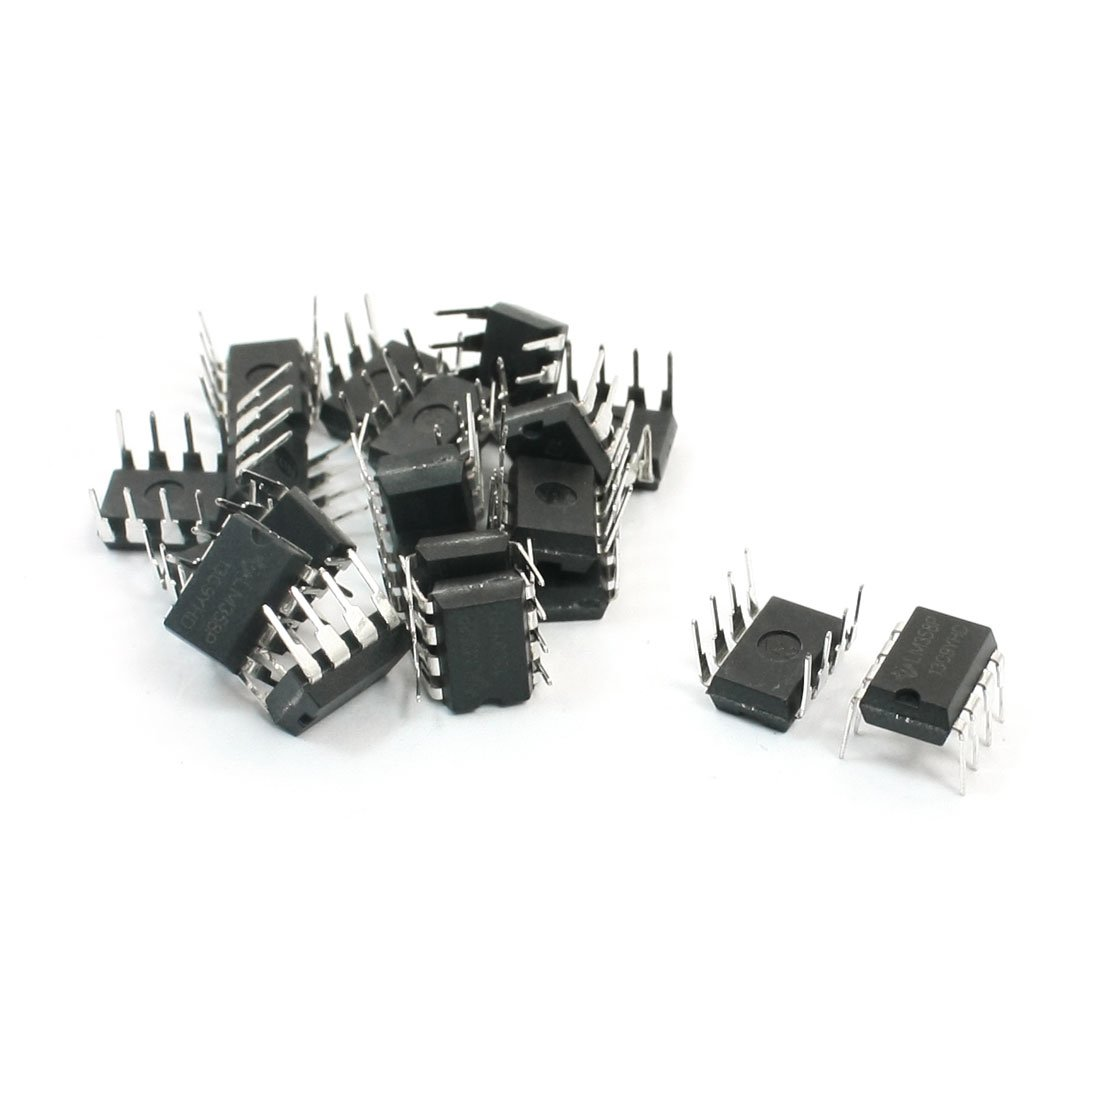 Lm358n Lm358 Dip 8 Chip Ic Dual Operational Amplifier 1 Single Audio Preamplifier Lm 358 Pack Industrial Scientific